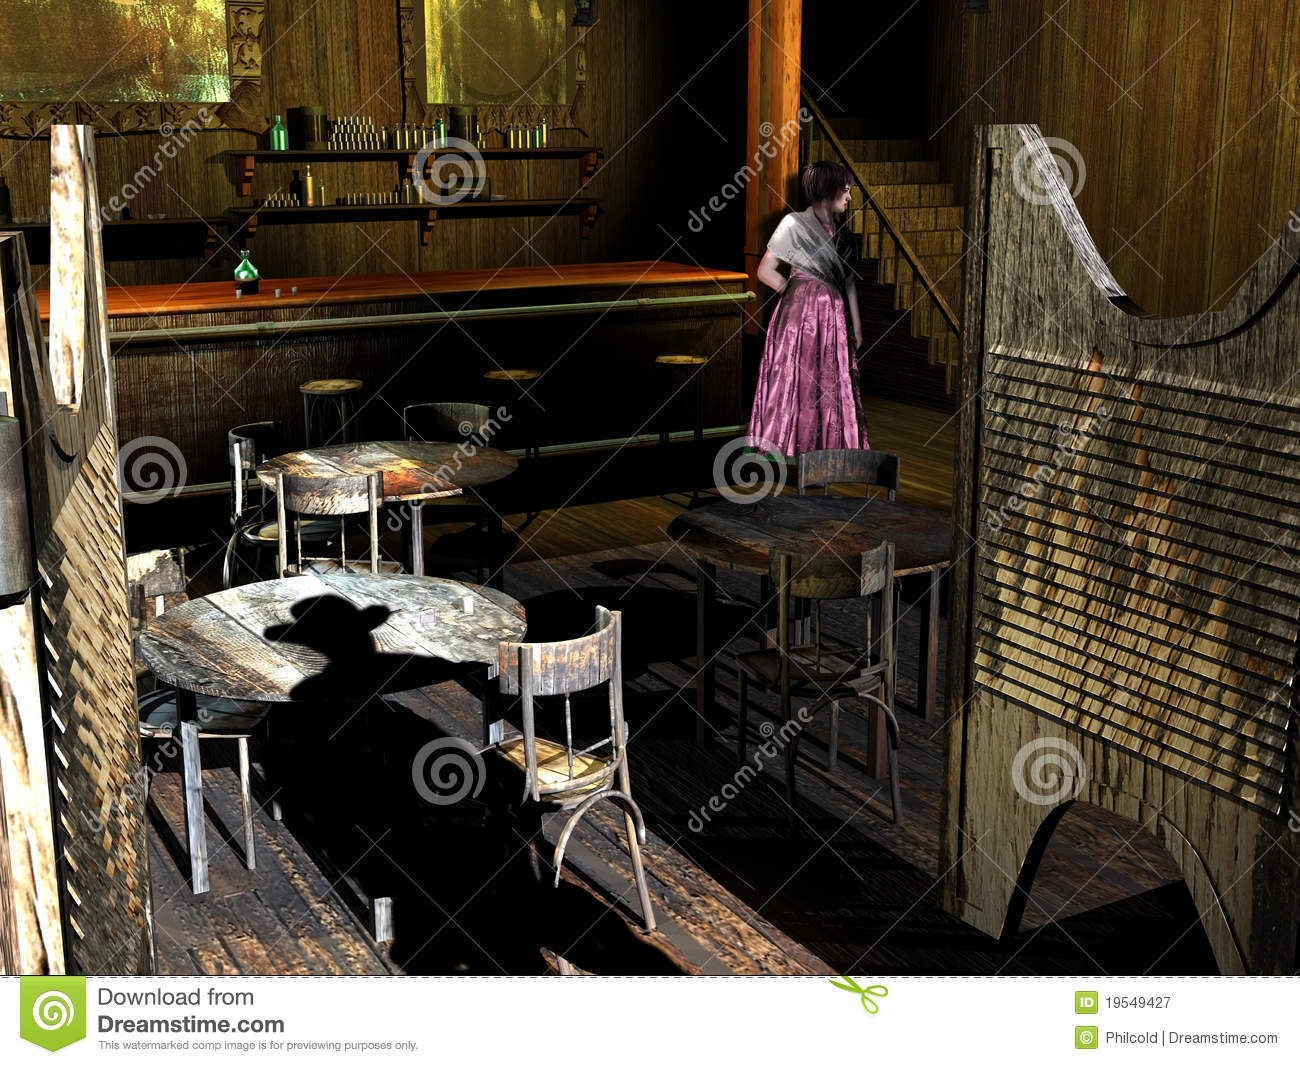 Old Western Saloon Girl Photos http://www.dreamstime.com/royalty-free-stock-photography-old-western-saloon-girl-image19549427